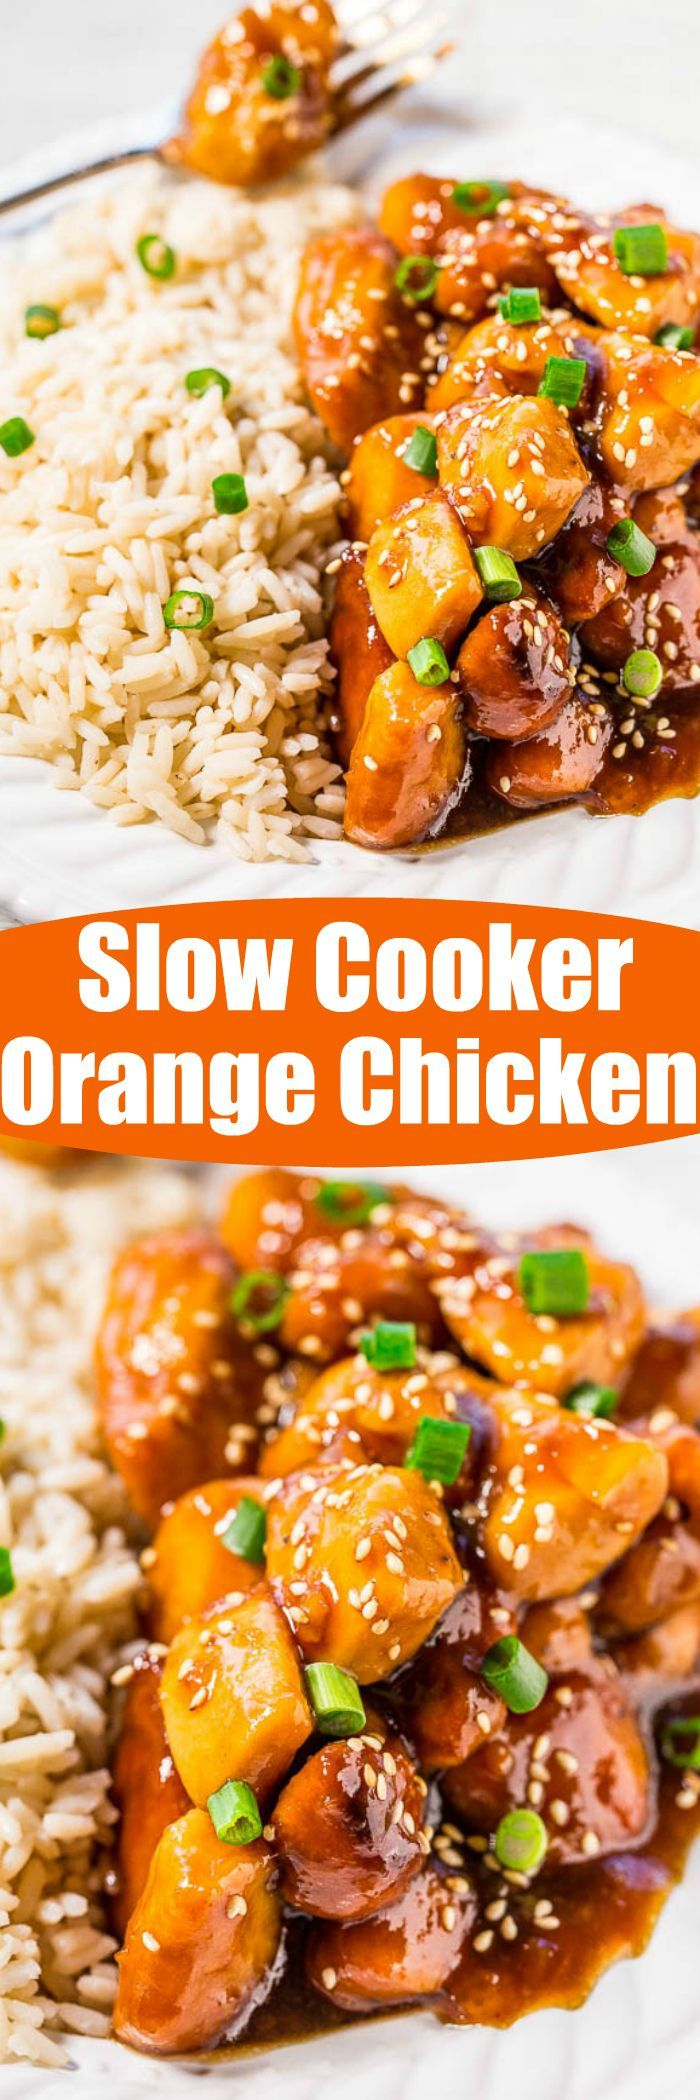 Slow Cooker Orange Chicken - The easiest orange chicken ever because your slow cooker does all the work!! Super juicy, tender, and coated with a sweet-yet-tangy orange glaze that's irresistible!! ~ Averie Cooks